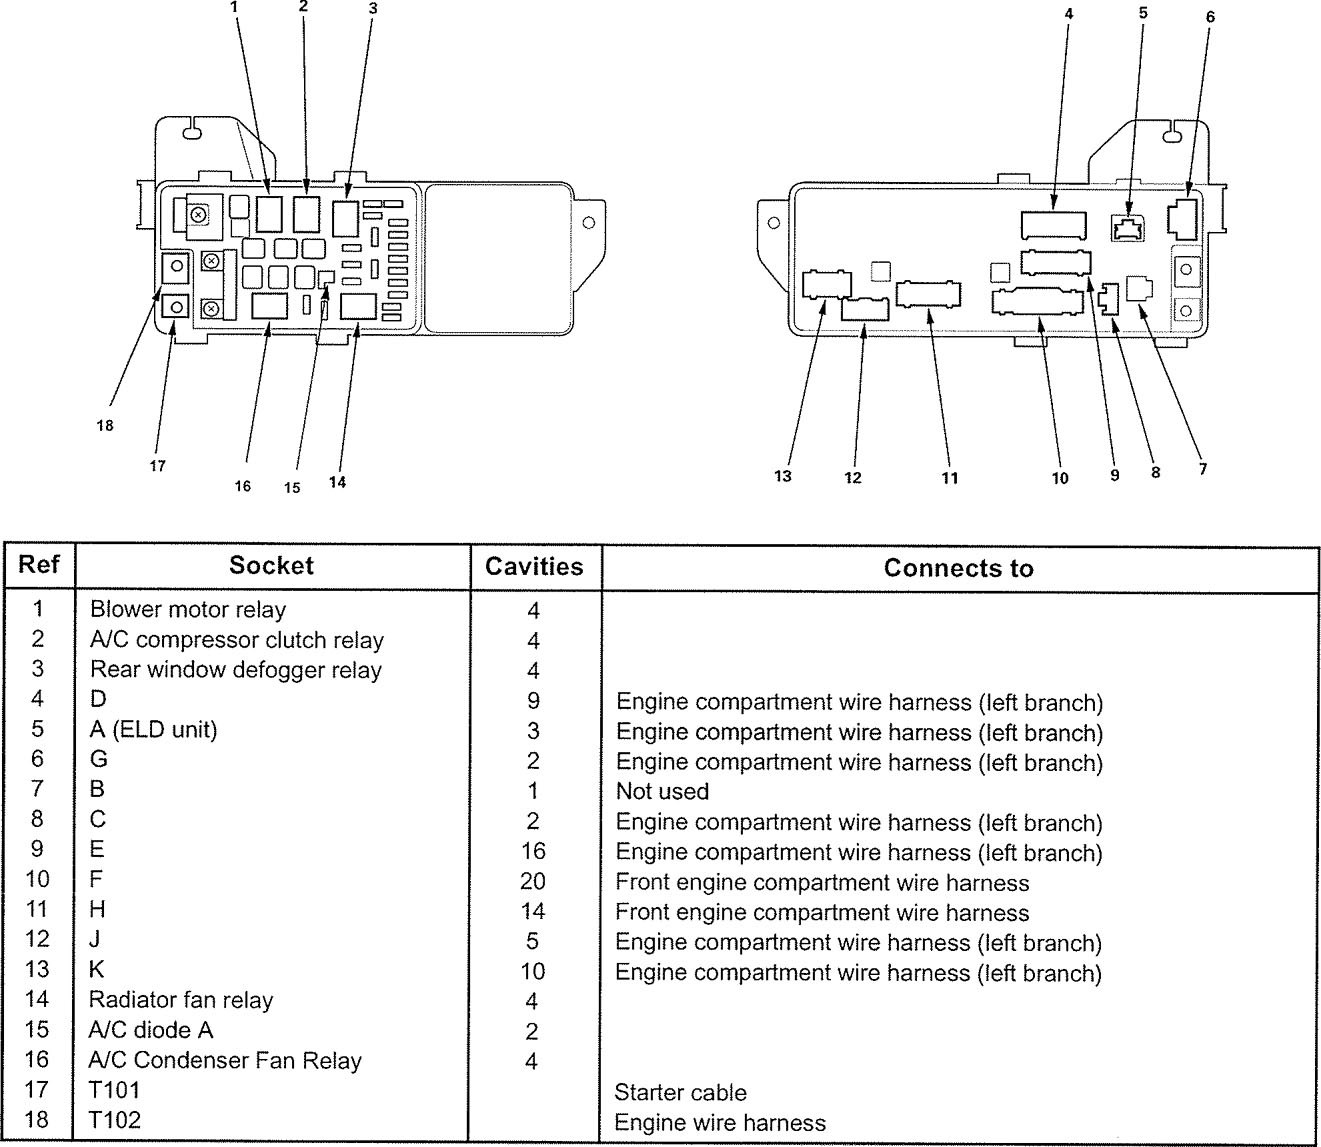 2005 Acura Wiring Diagram Great Design Of Mdx Fuse Box Tl Diagrams Panel Carknowledge Rsx Radio